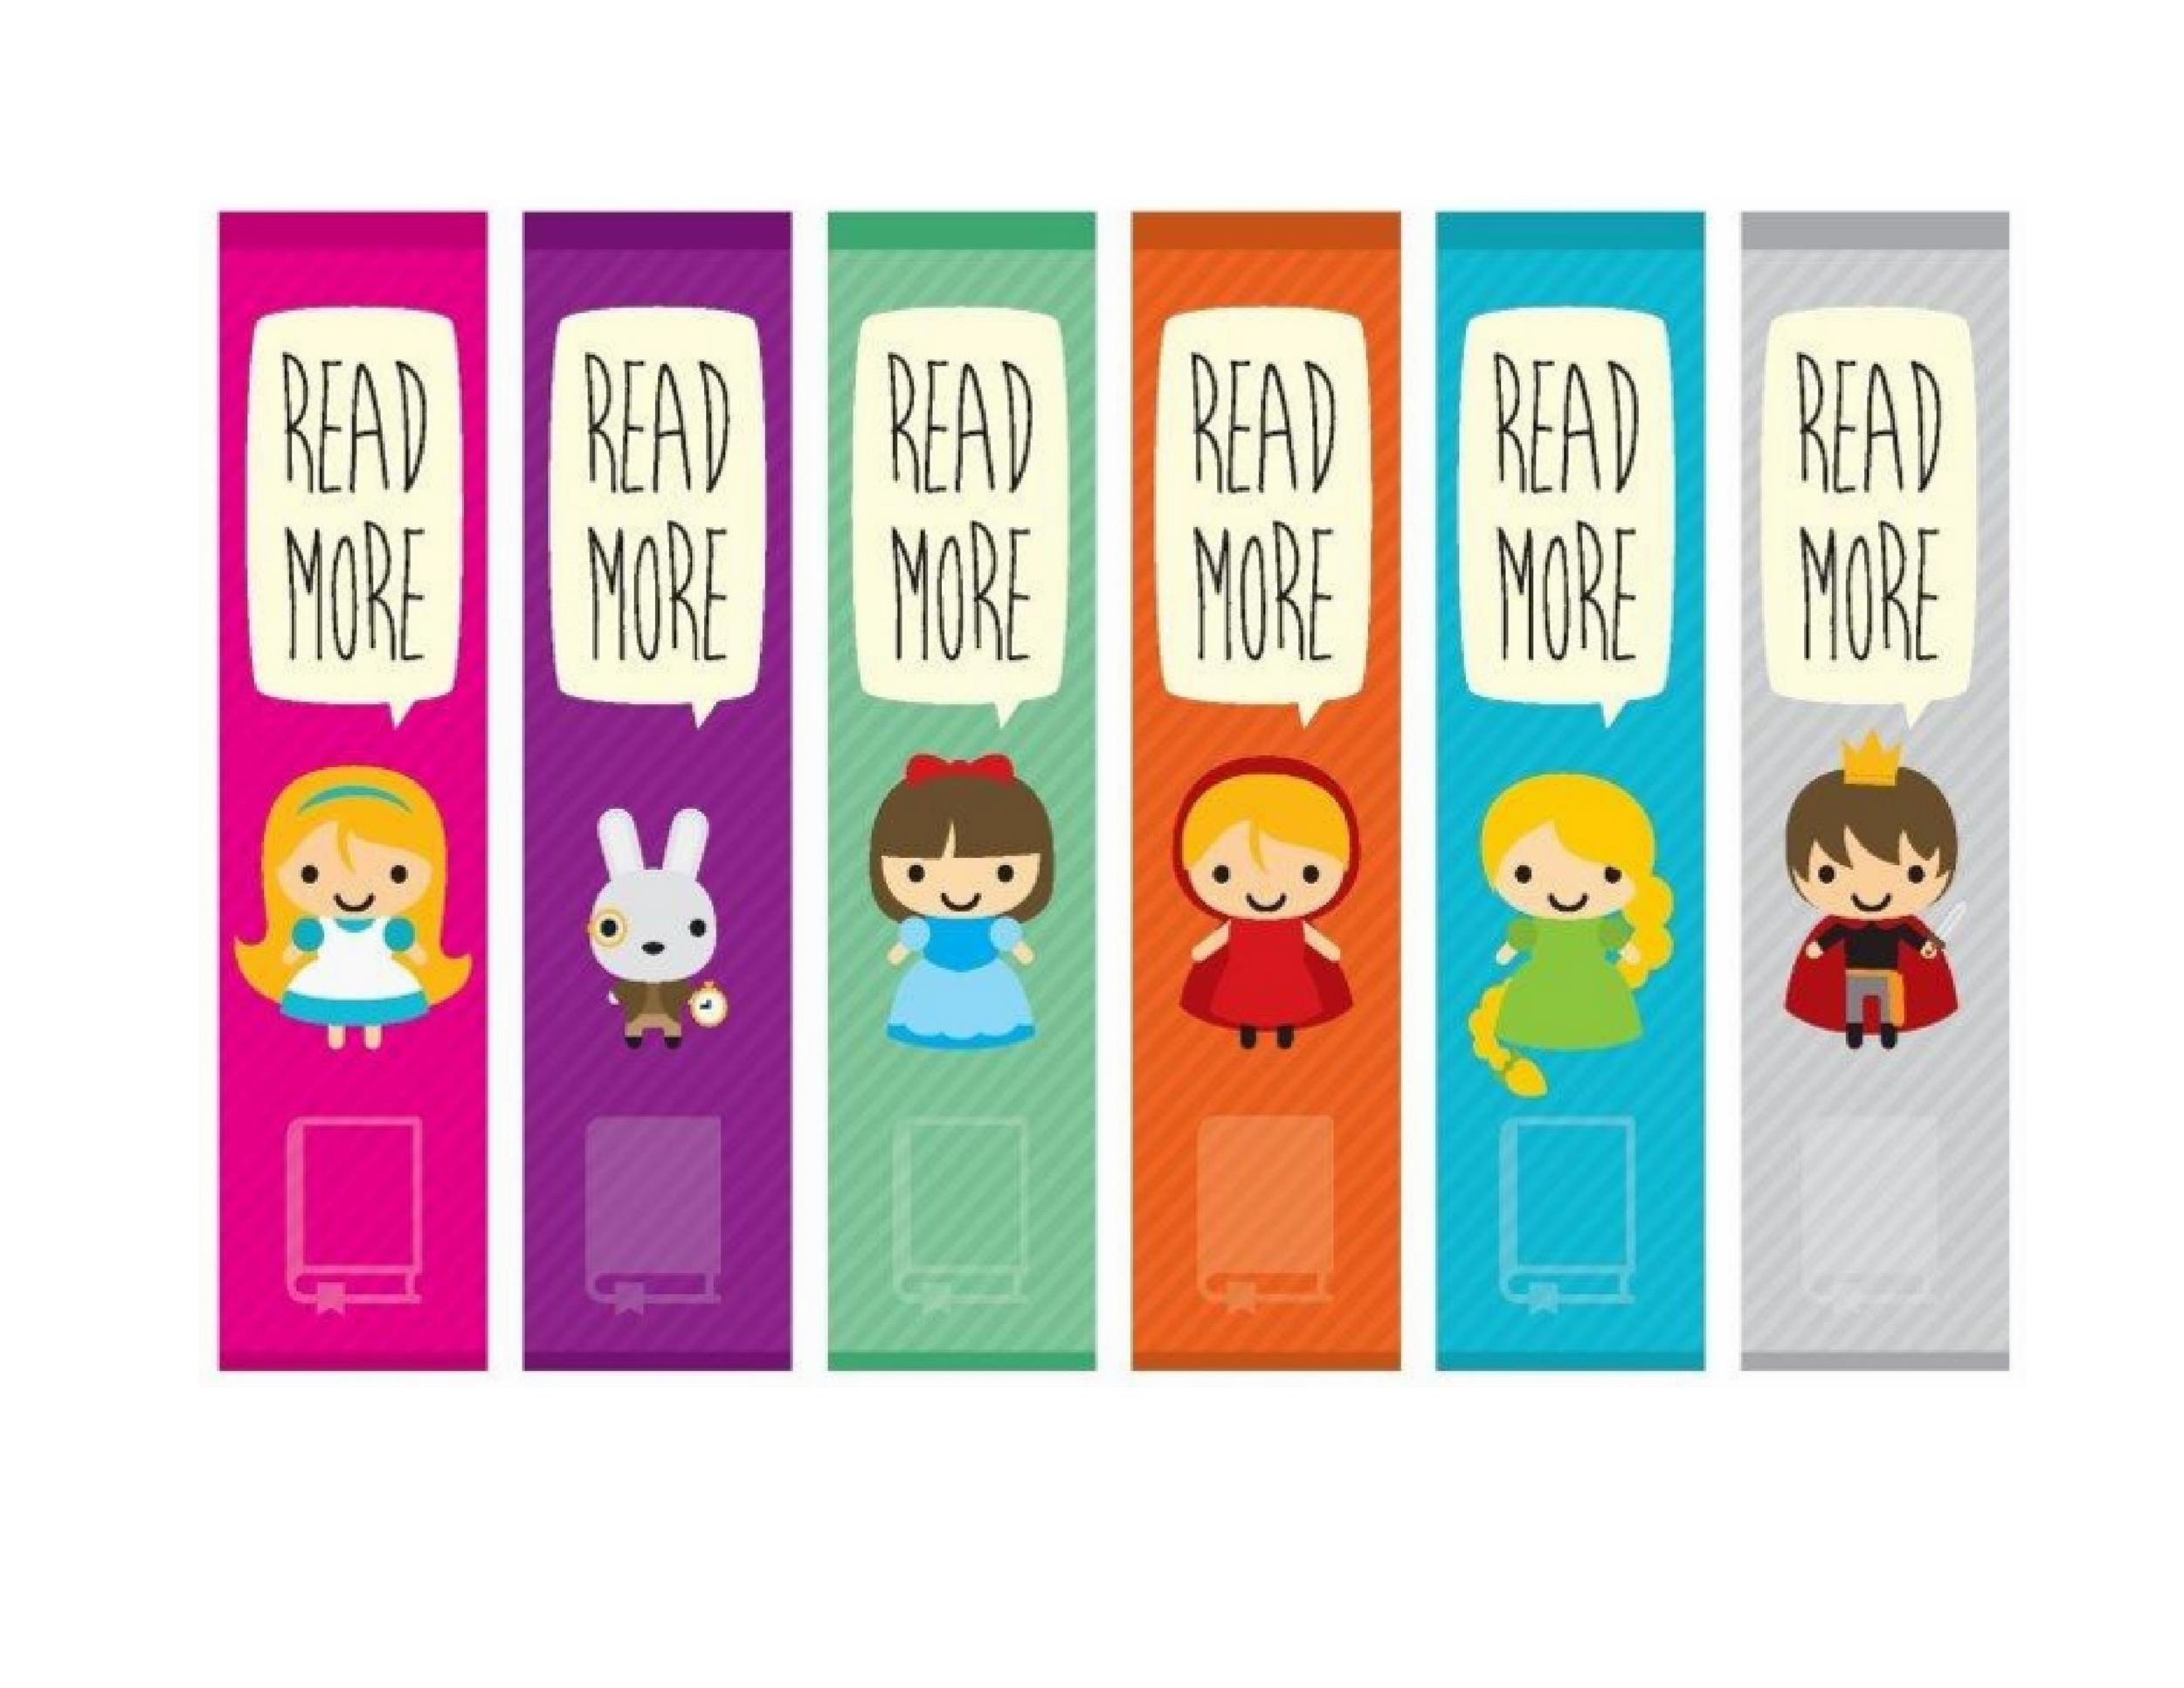 free bookmark template 22 printable bookmark template 22 - Free Printable Bookmarks Templates